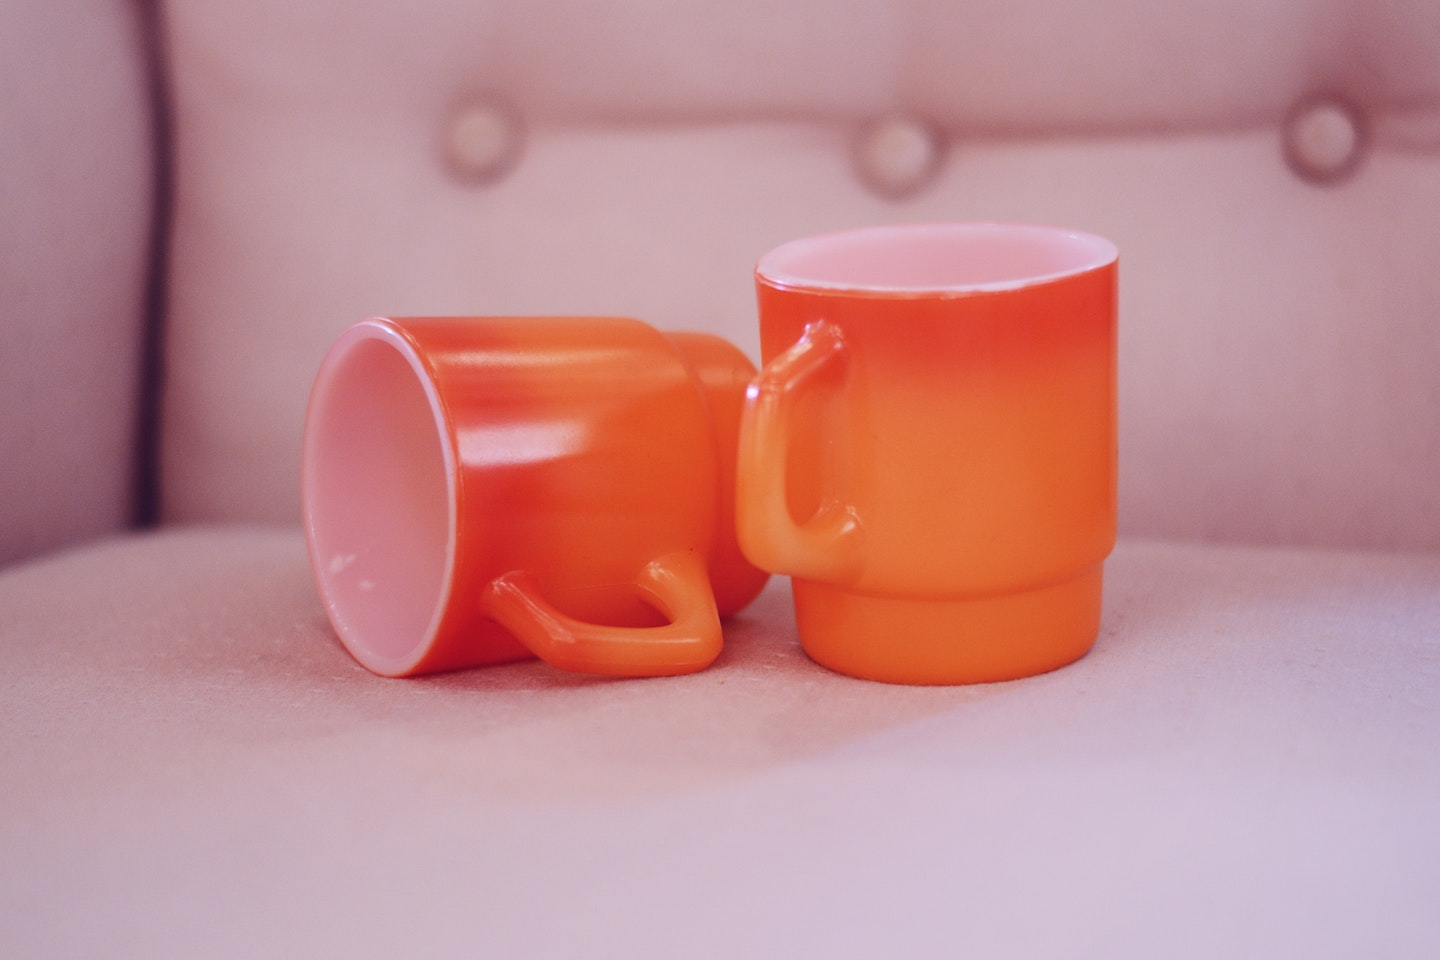 Two orange mugs are on a chair. One is laying on its side.